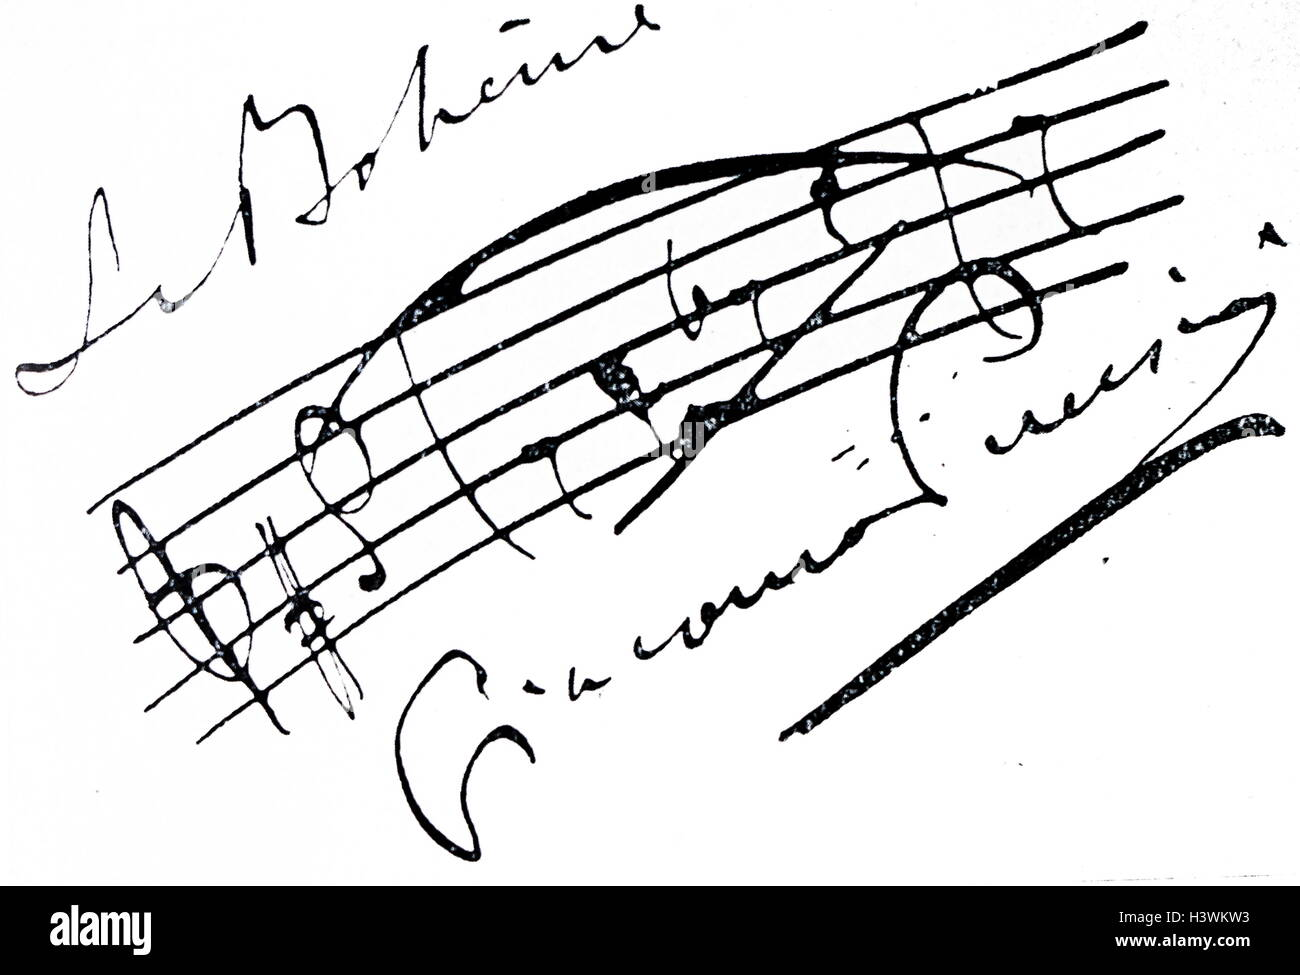 Autograph of Giacomo Puccini (1858-1924) an Italian composer. Dated 19th Century - Stock Image